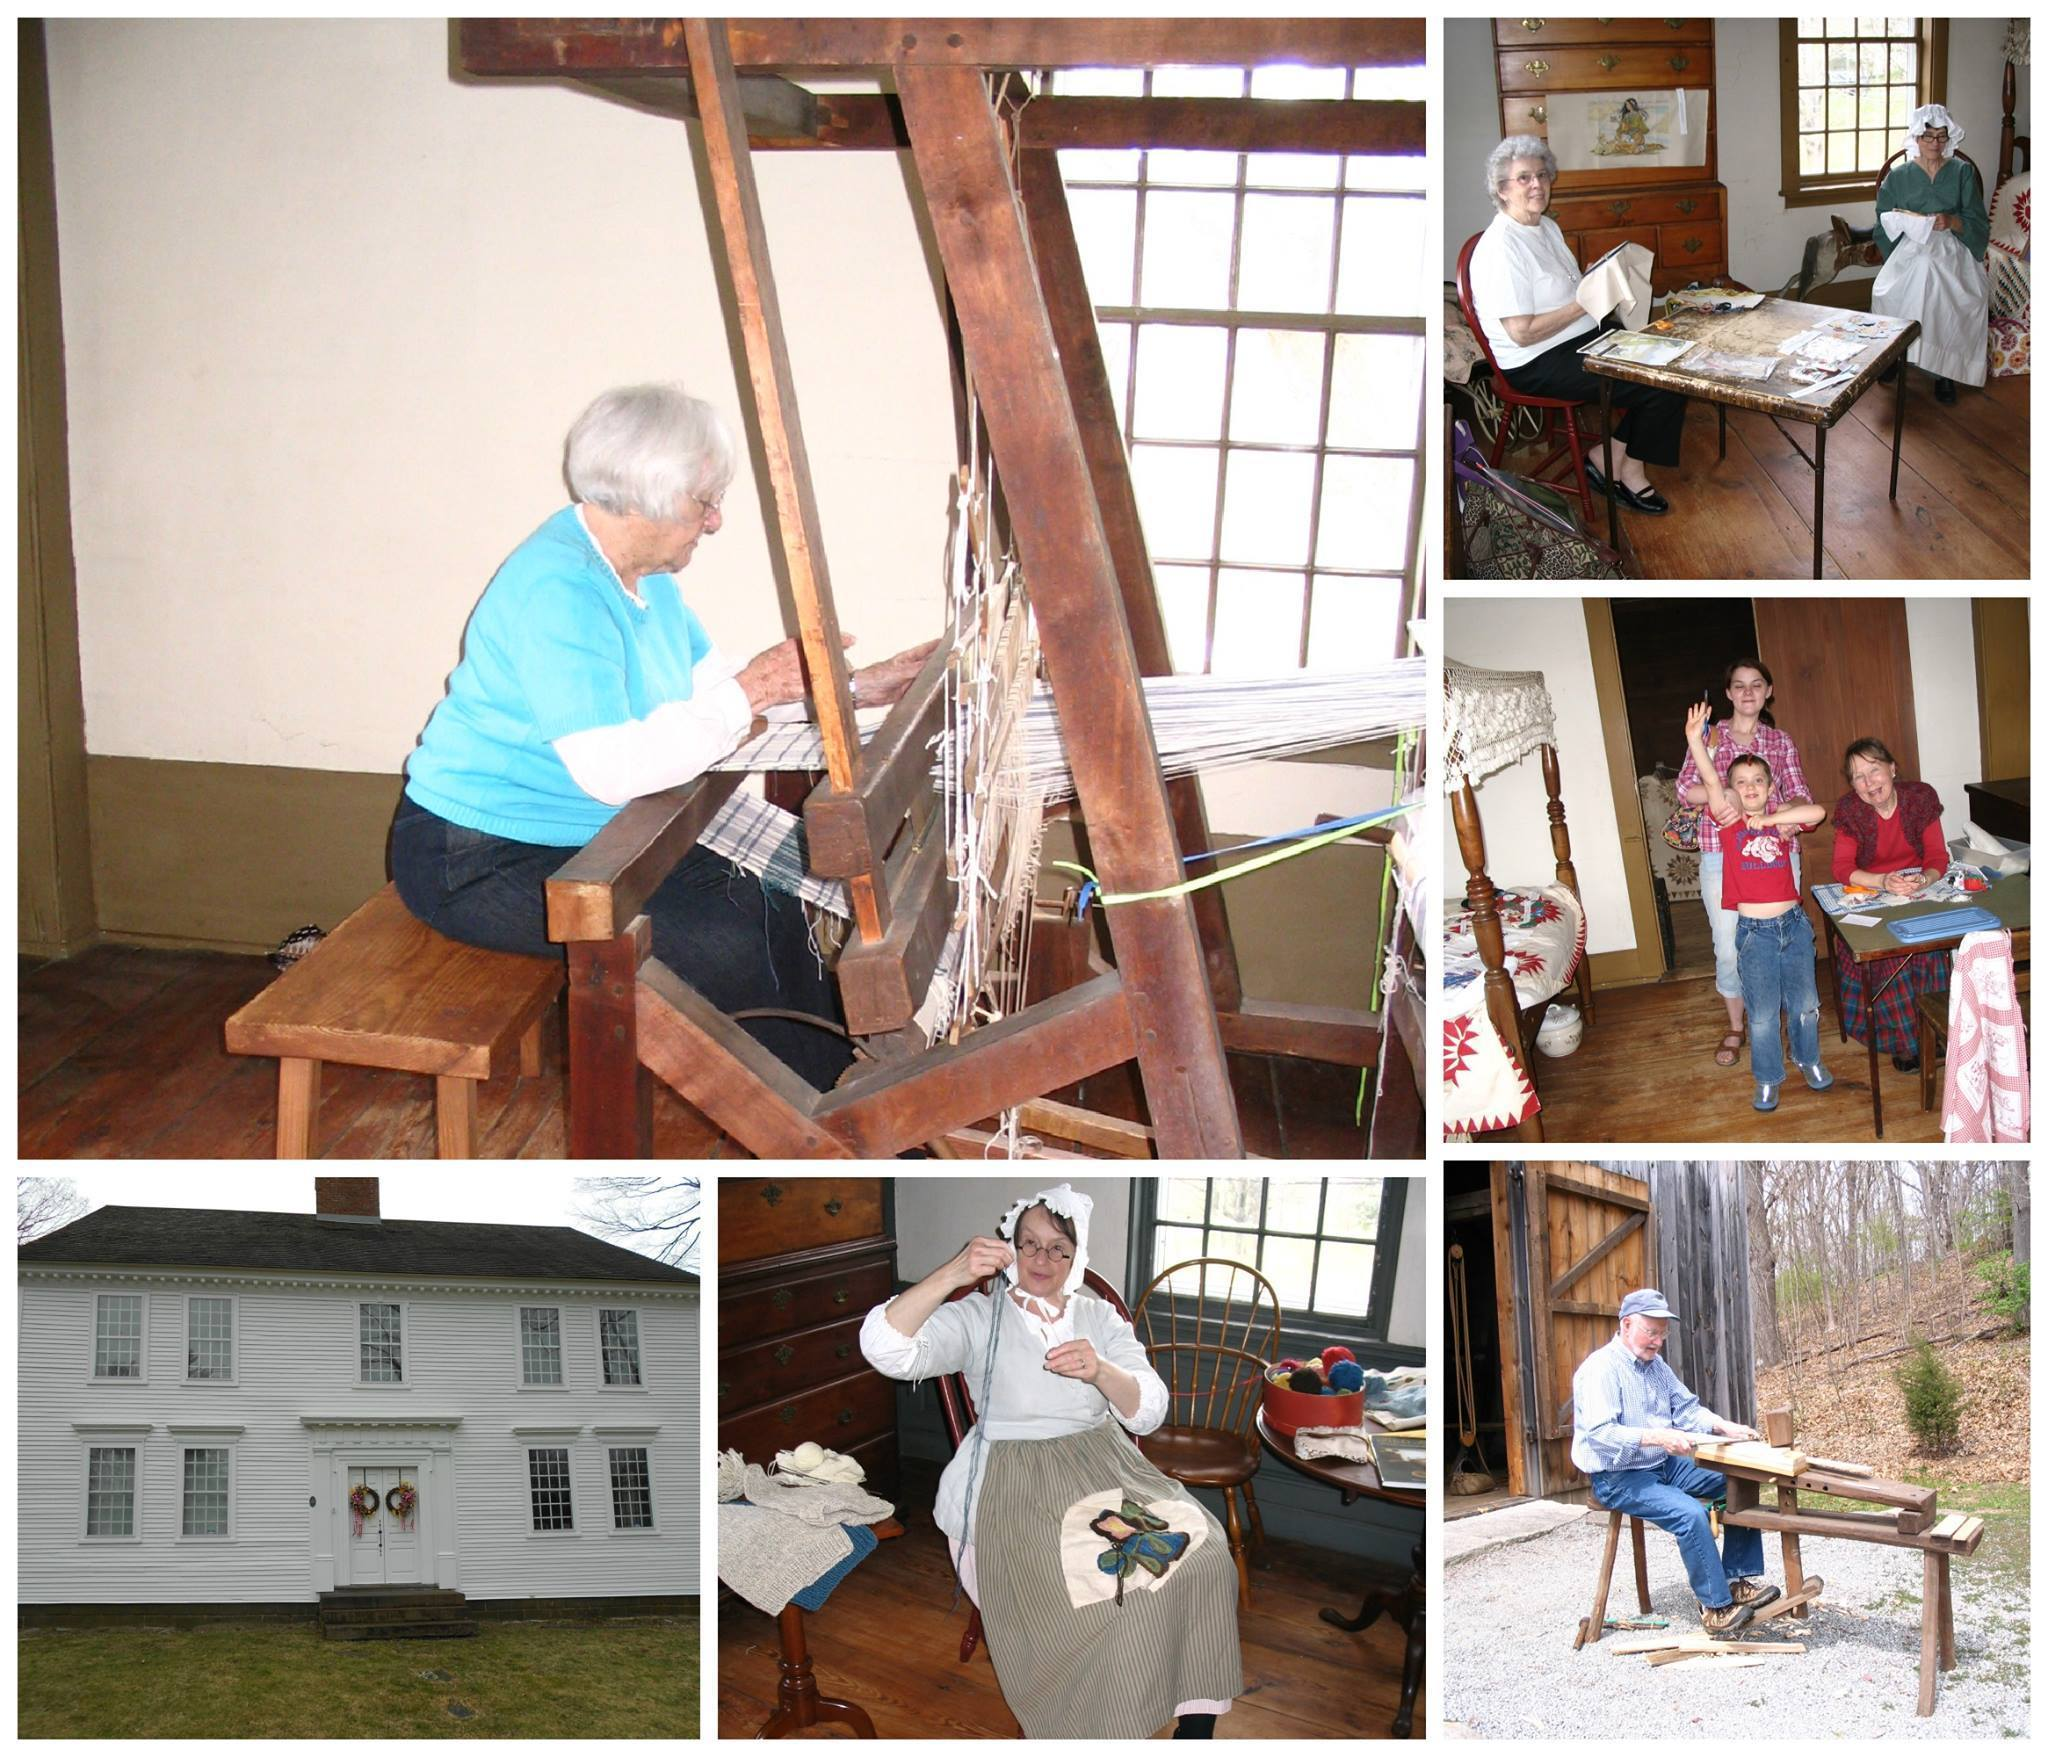 The Historical Society of Glastonbury will host Textile Day on May 18.